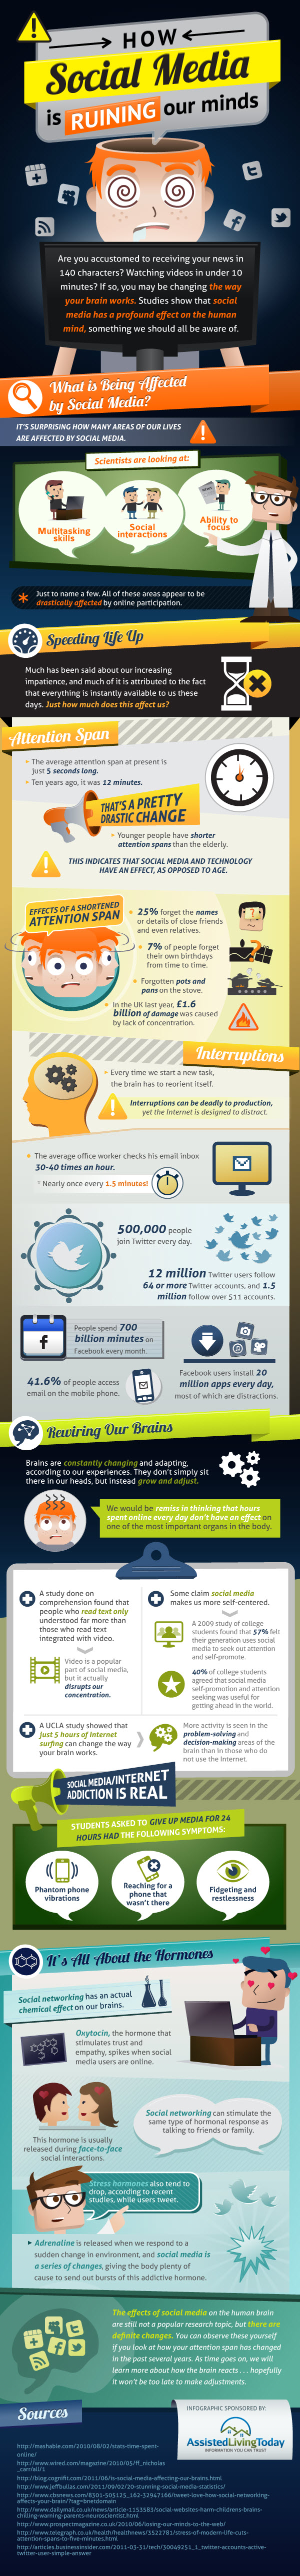 Impact of Social Media on our Minds